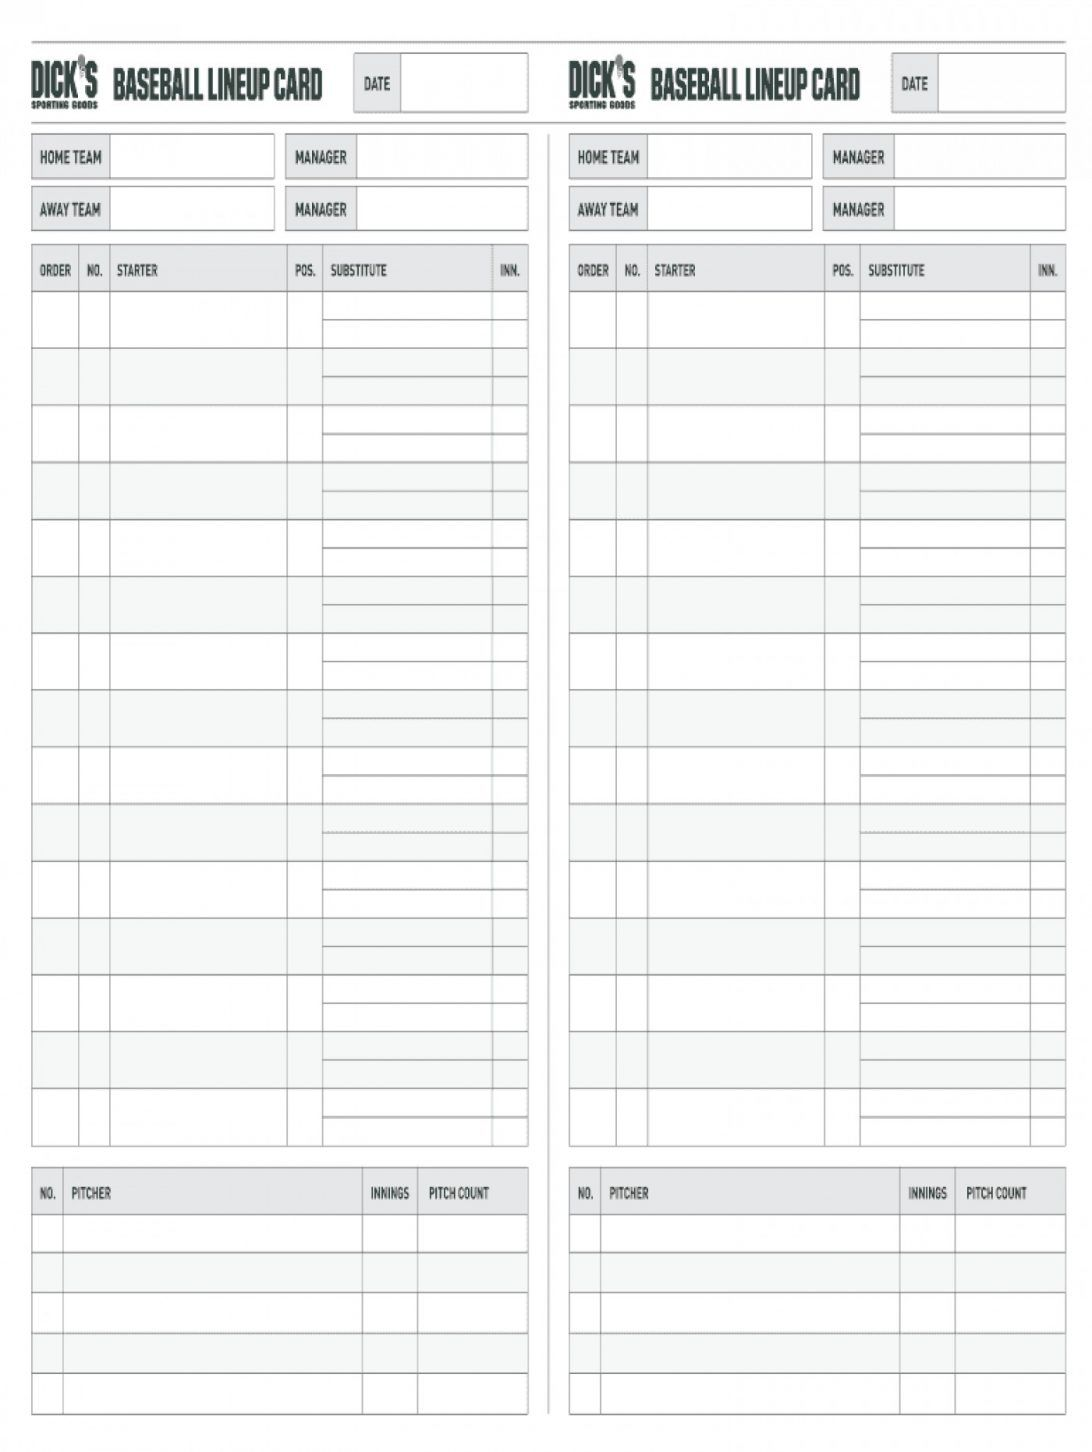 Baseball Lineup Template Card Printable Excel Free Fillable Pertaining To Free Baseball Lineup Card Template Gre In 2020 Baseball Lineup Card Template Baseball Lines